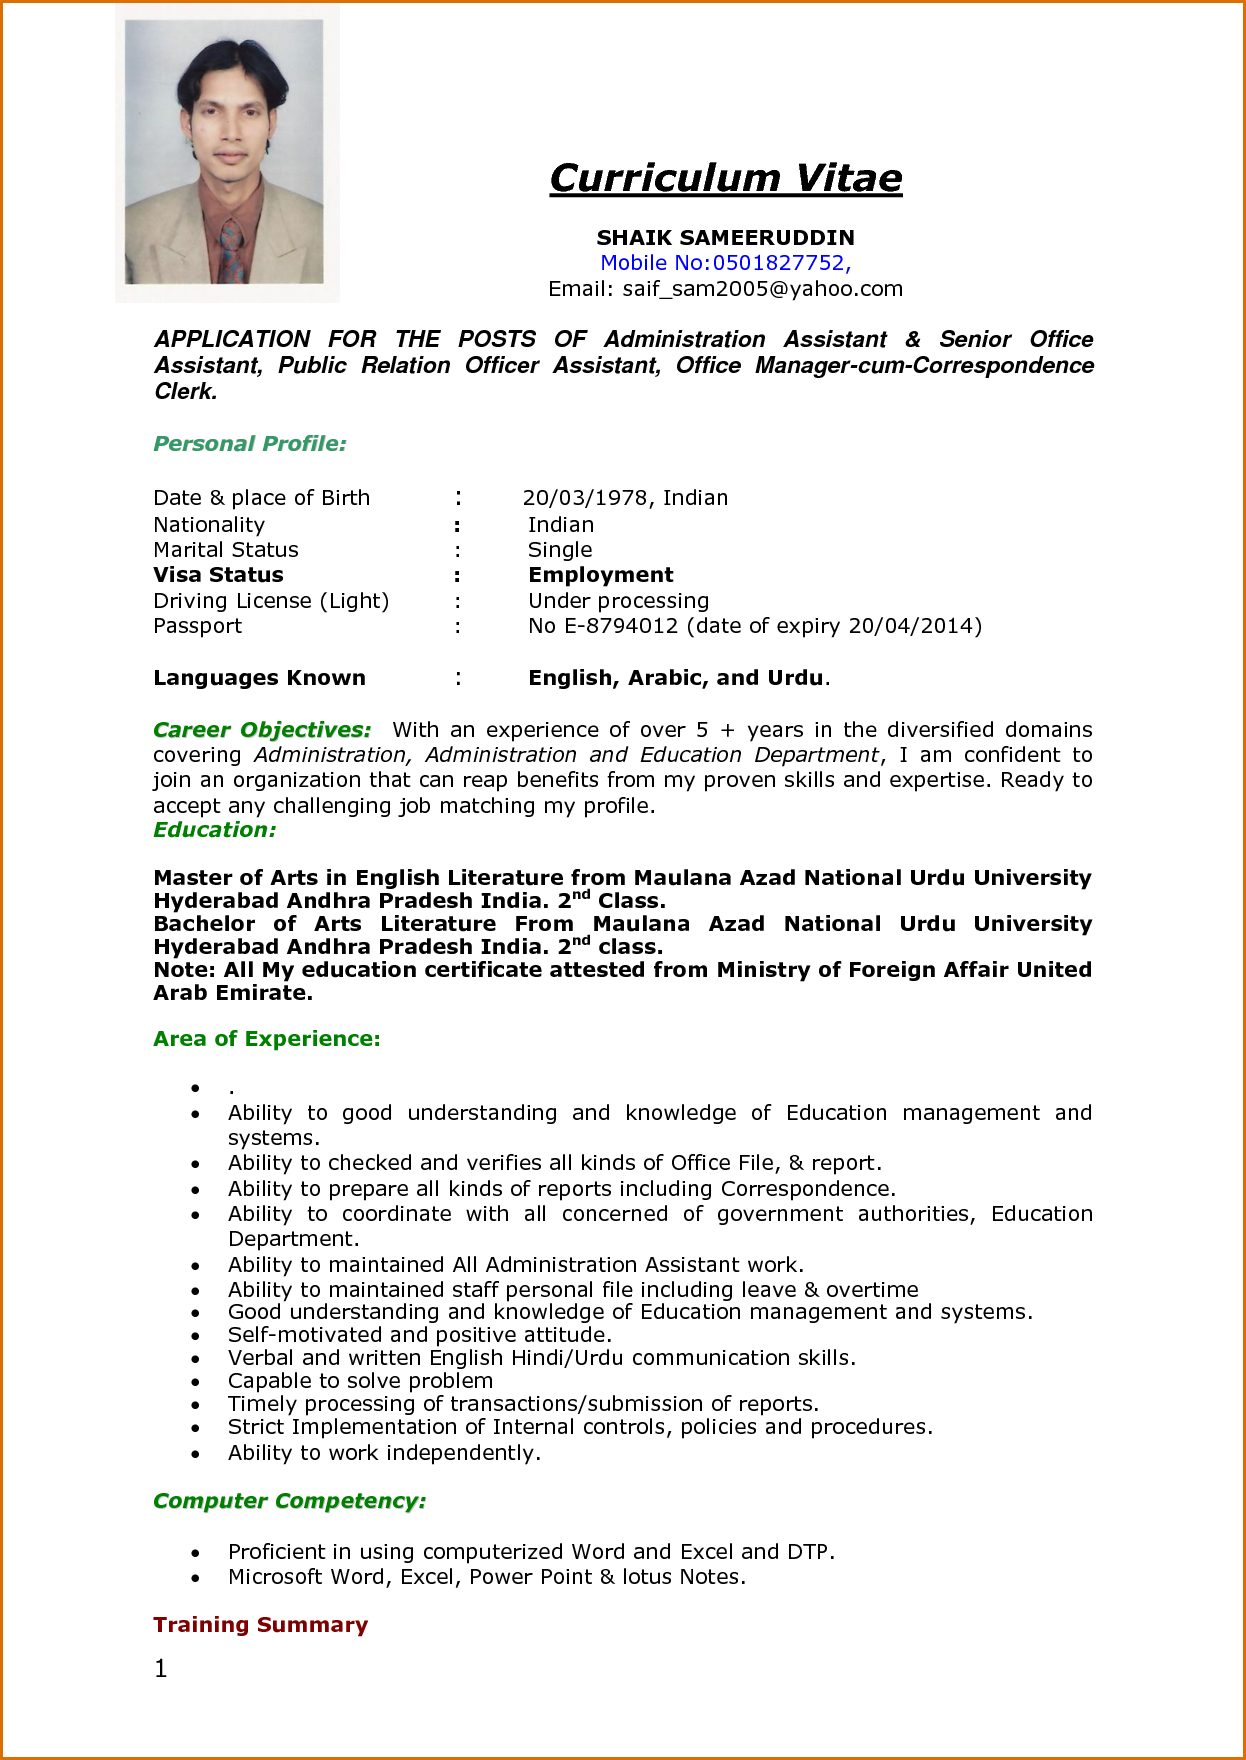 Cv Template Job Application (With images) Apply job